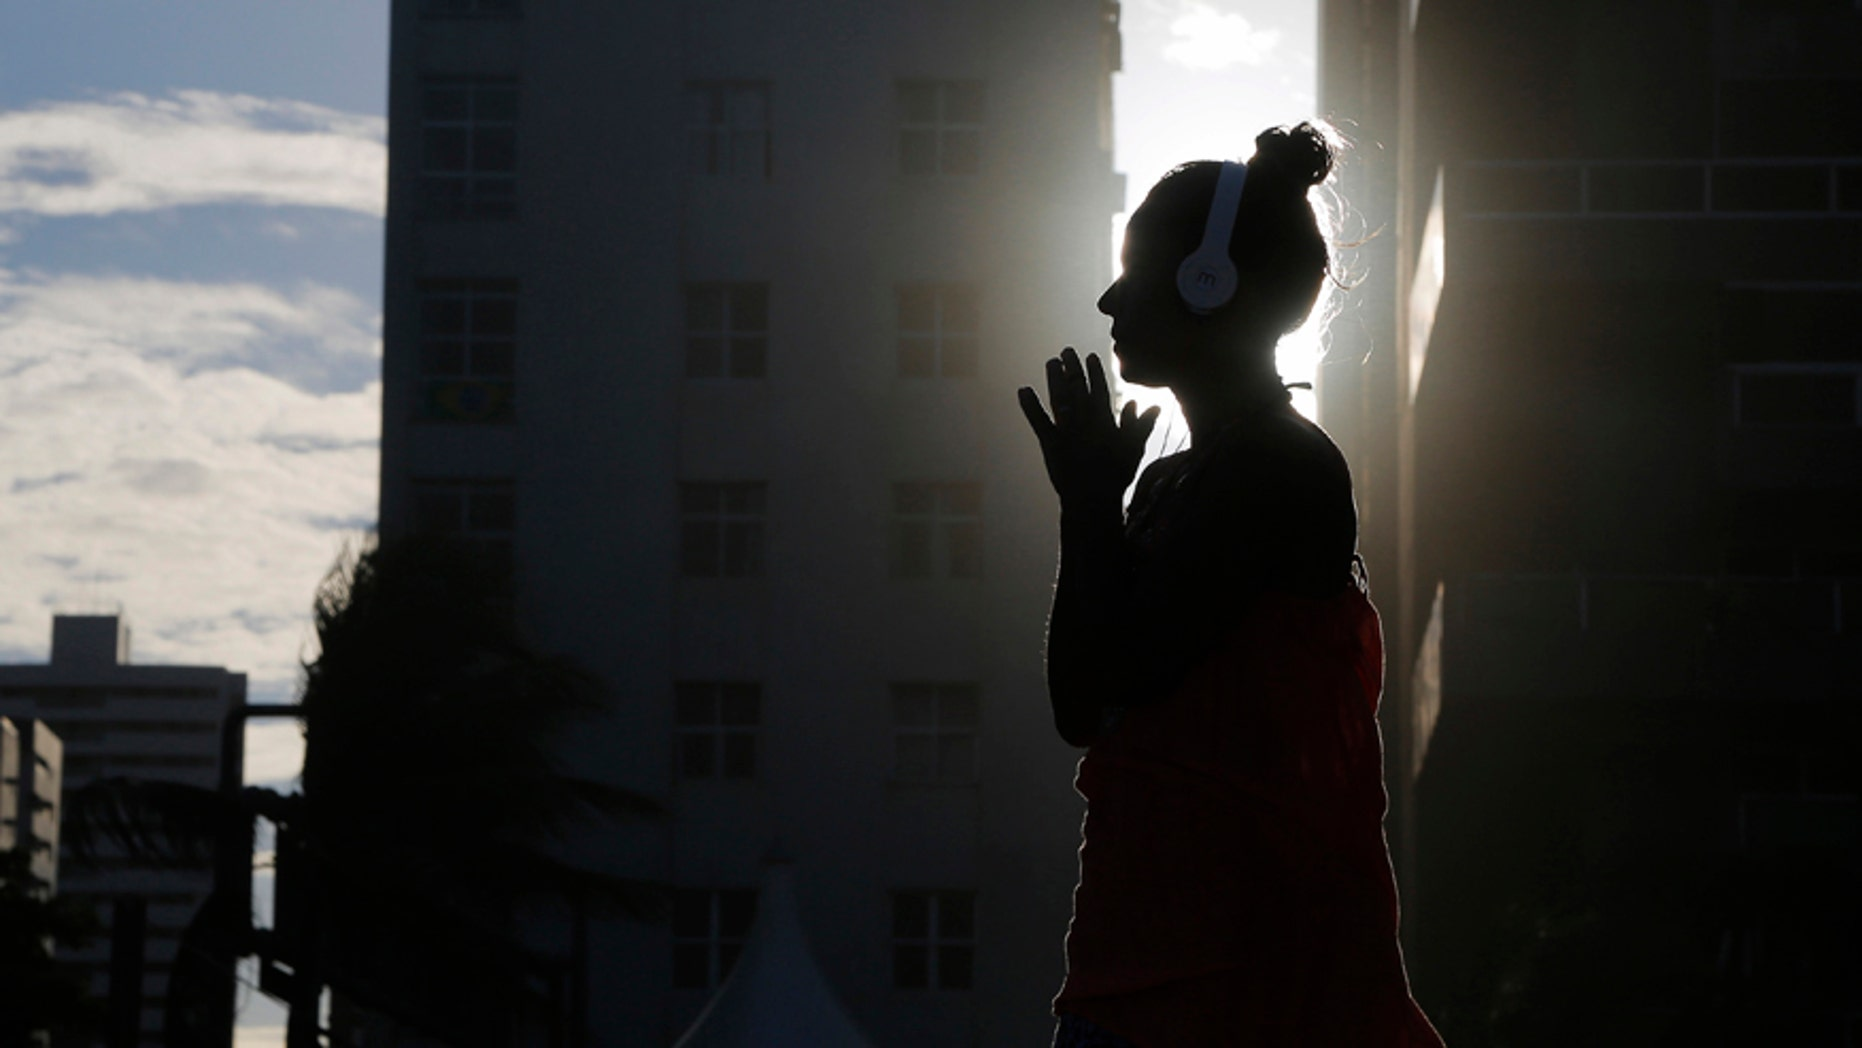 File photo: A woman listens to music as the sun sets as seen between buildings on Boa Viagem beach in Recife June 30, 2014.